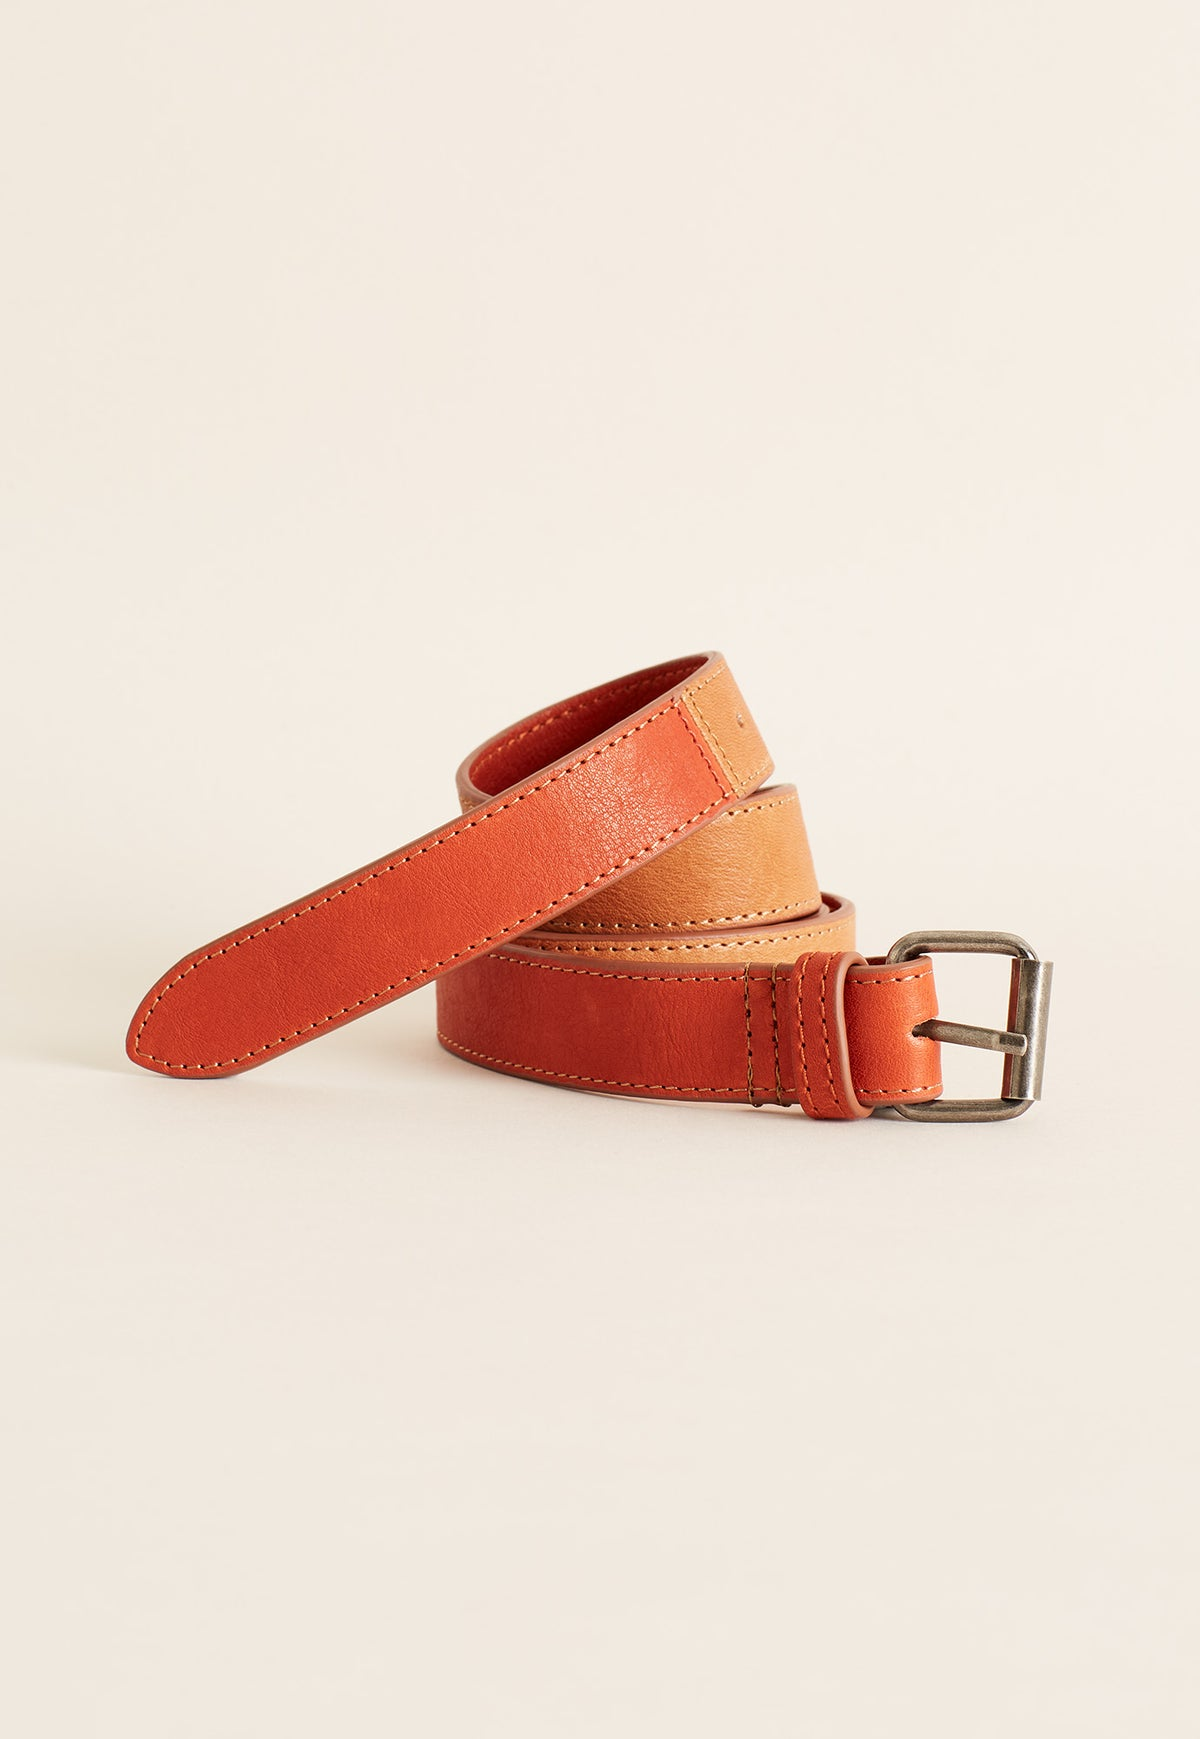 Leather Belt - Russet Red